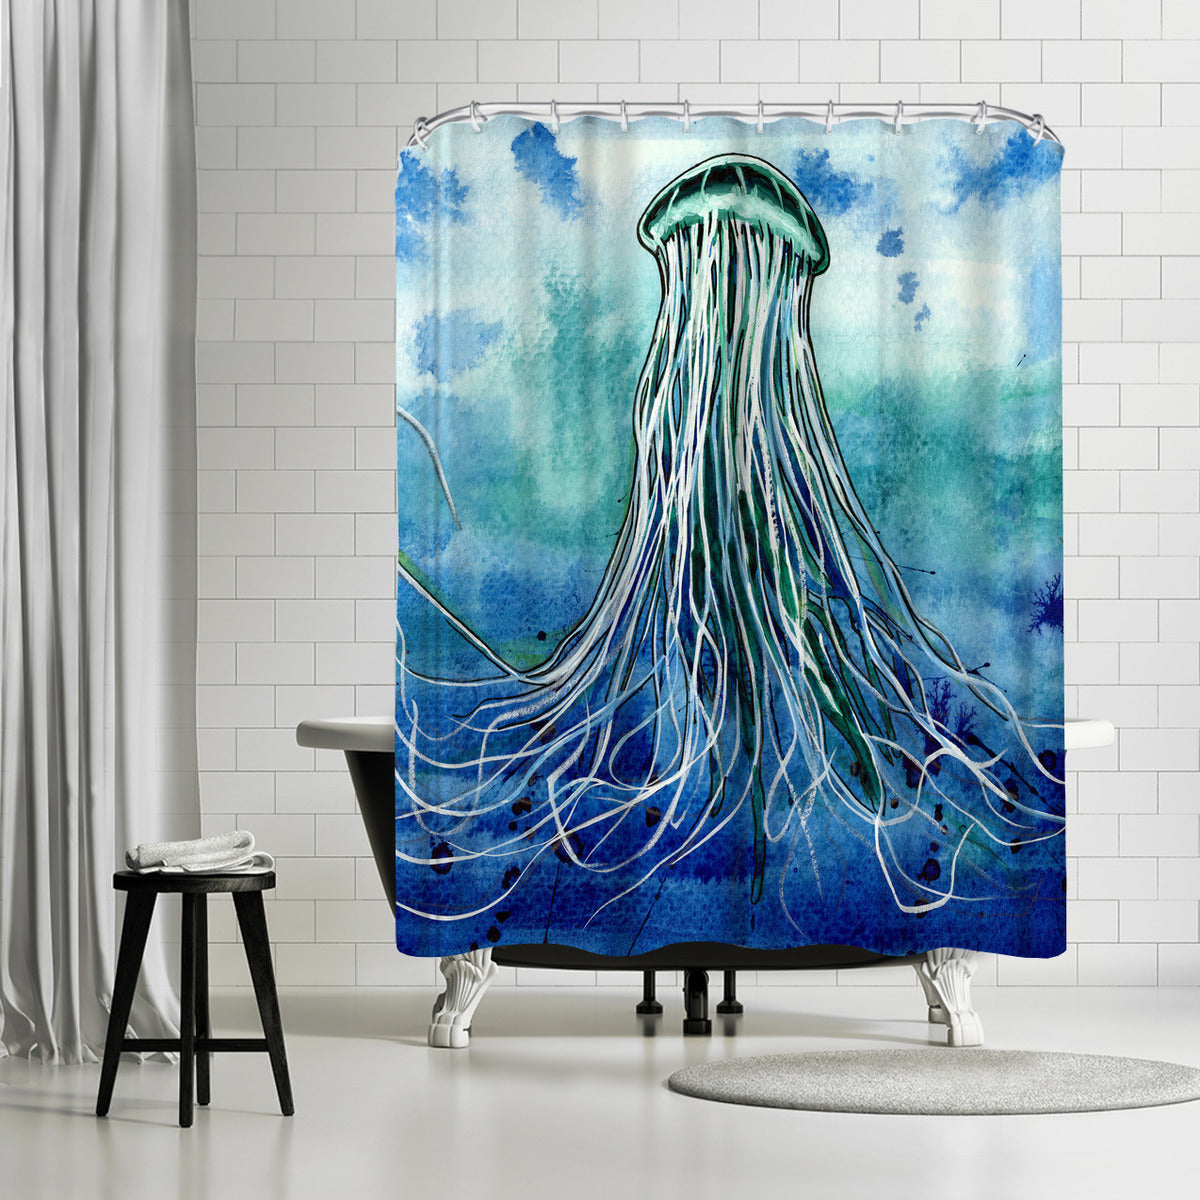 Emperor Jellyfish by Sam Nagel Shower Curtain - Americanflat